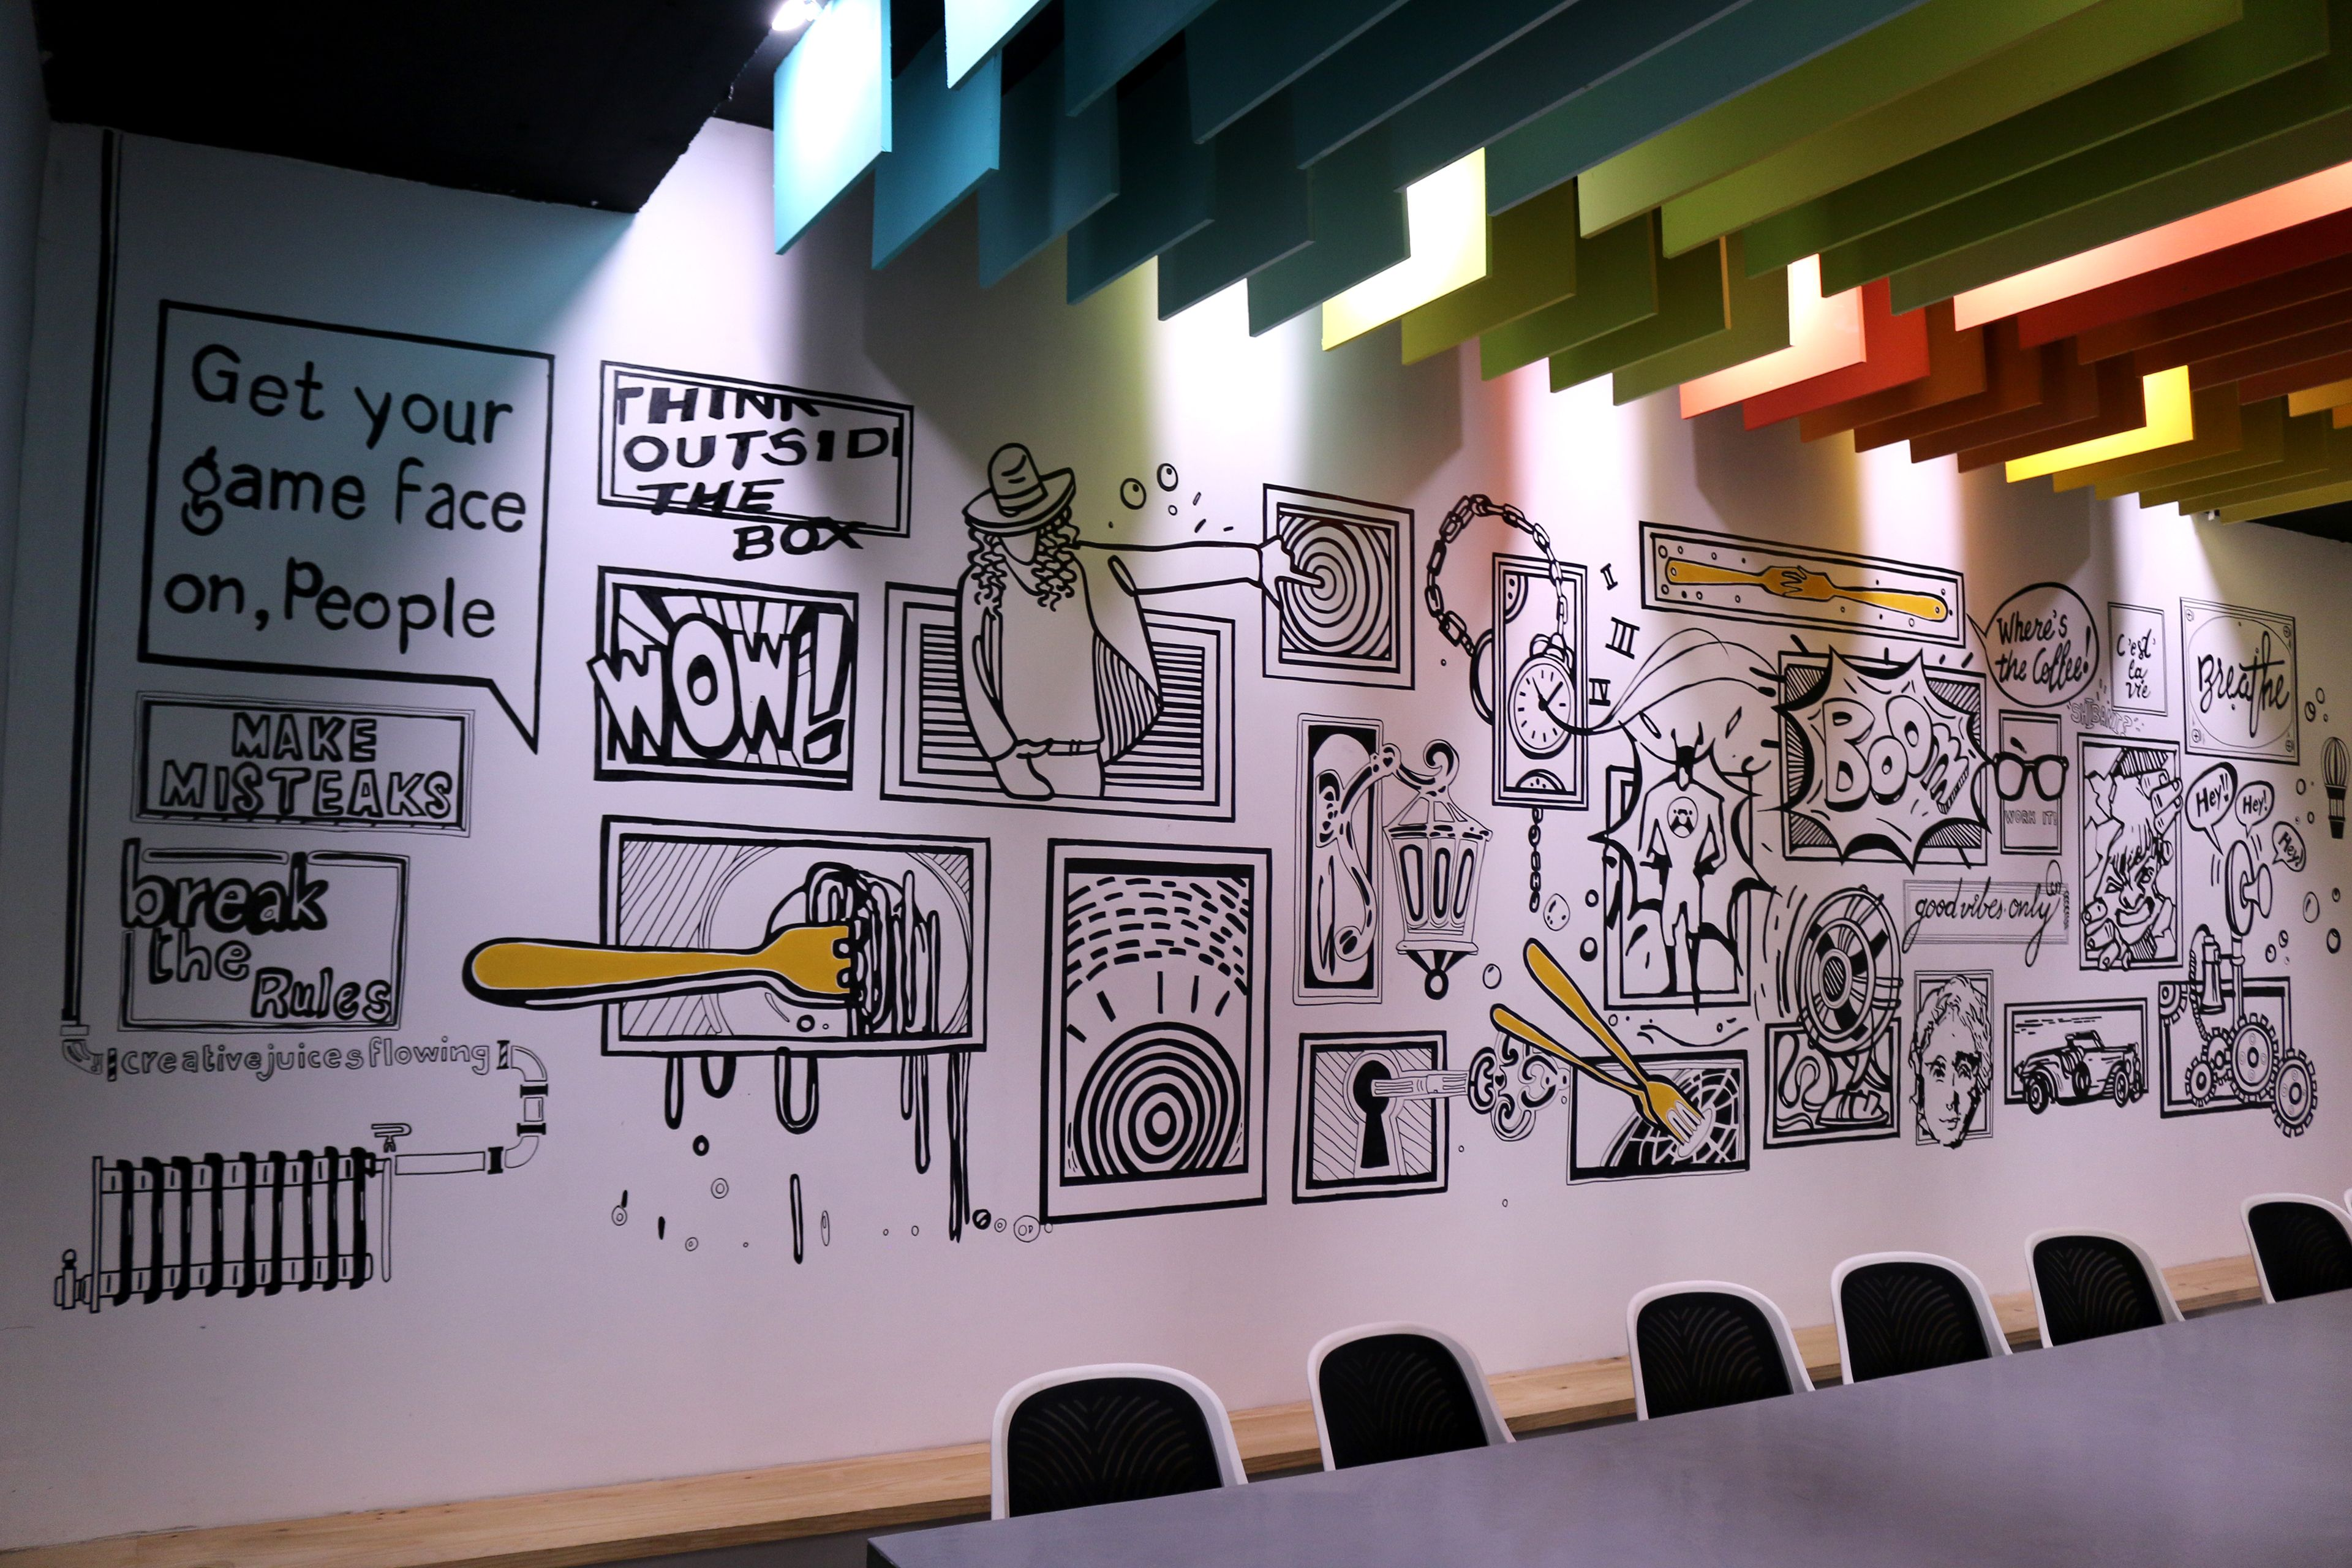 wall mural designs hand done for a media agency called fork media wall mural designs hand done for a media agency called fork media in mumbai the project required us to jazz up their new office space with quirky doodles